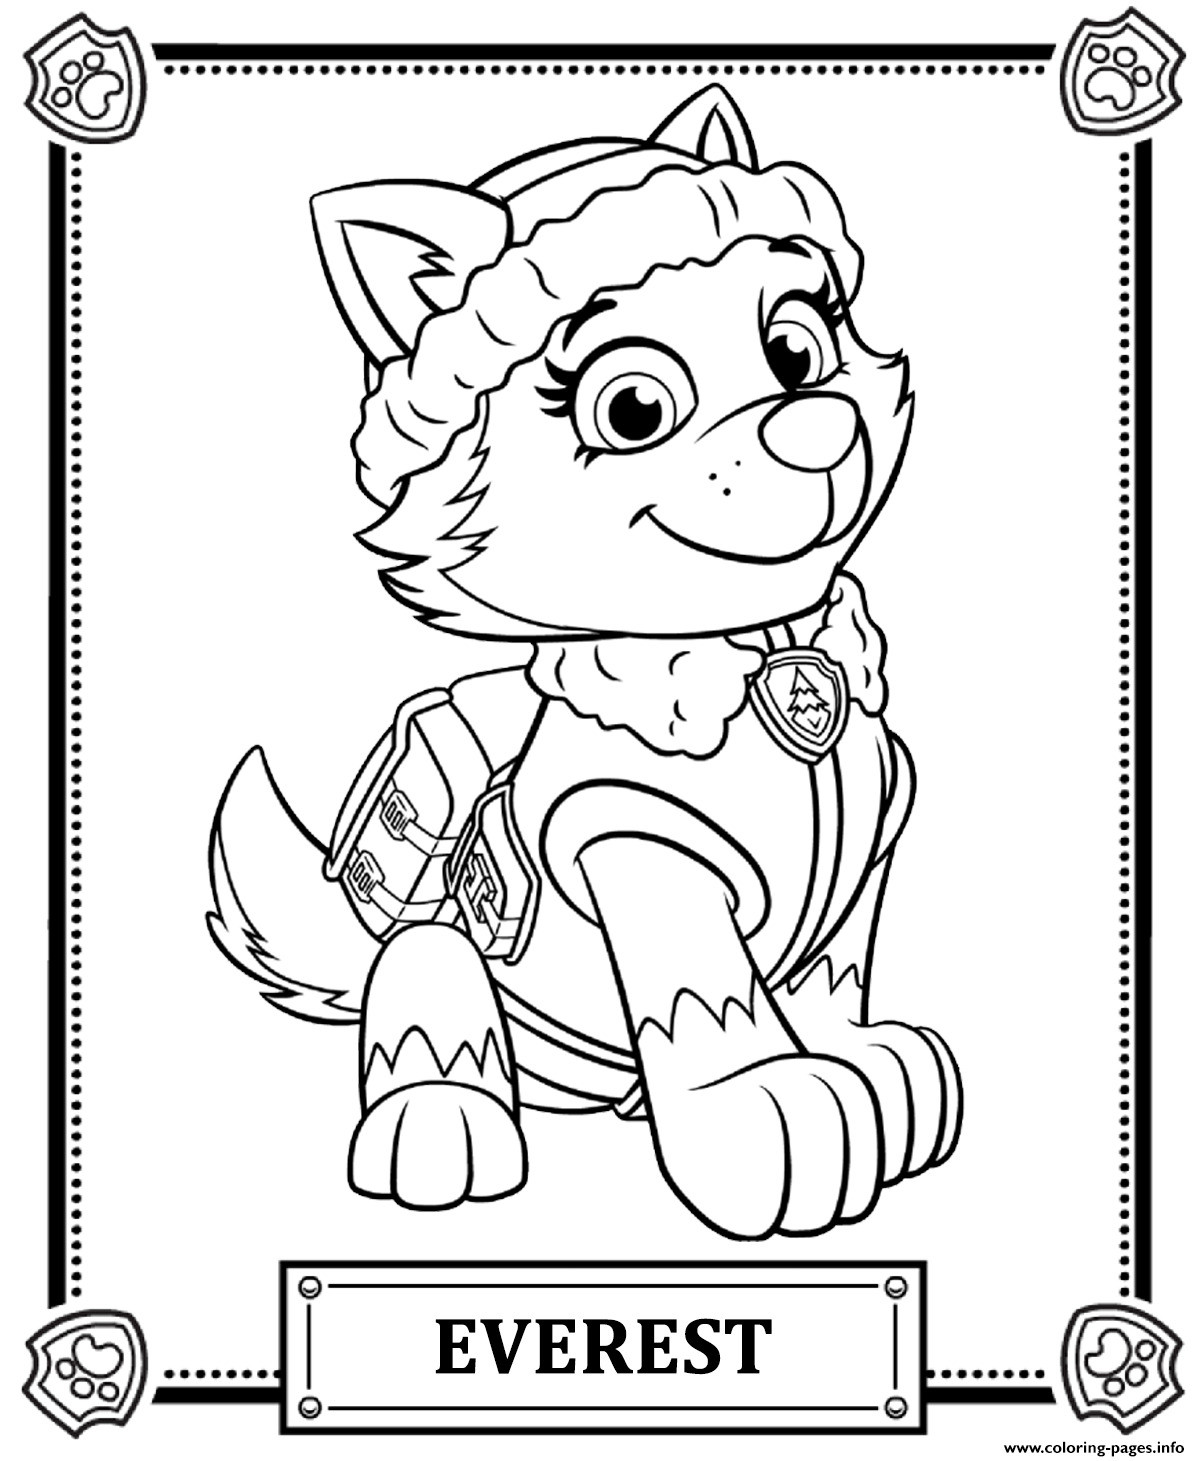 Paw Patrol Sky Ausmalbilder Inspirierend Inspirational Free Paw Patrol Coloring Pages Coloring Pages Fotos